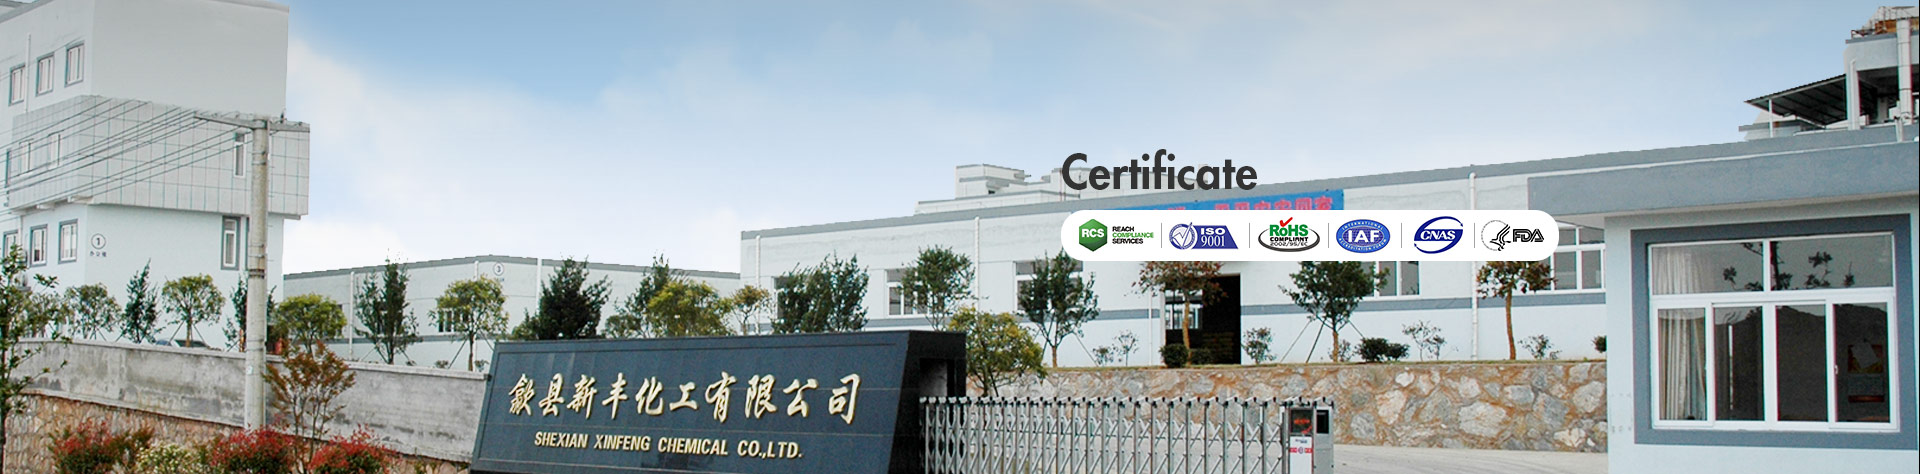 Kunshan PG chemical co., LTD.